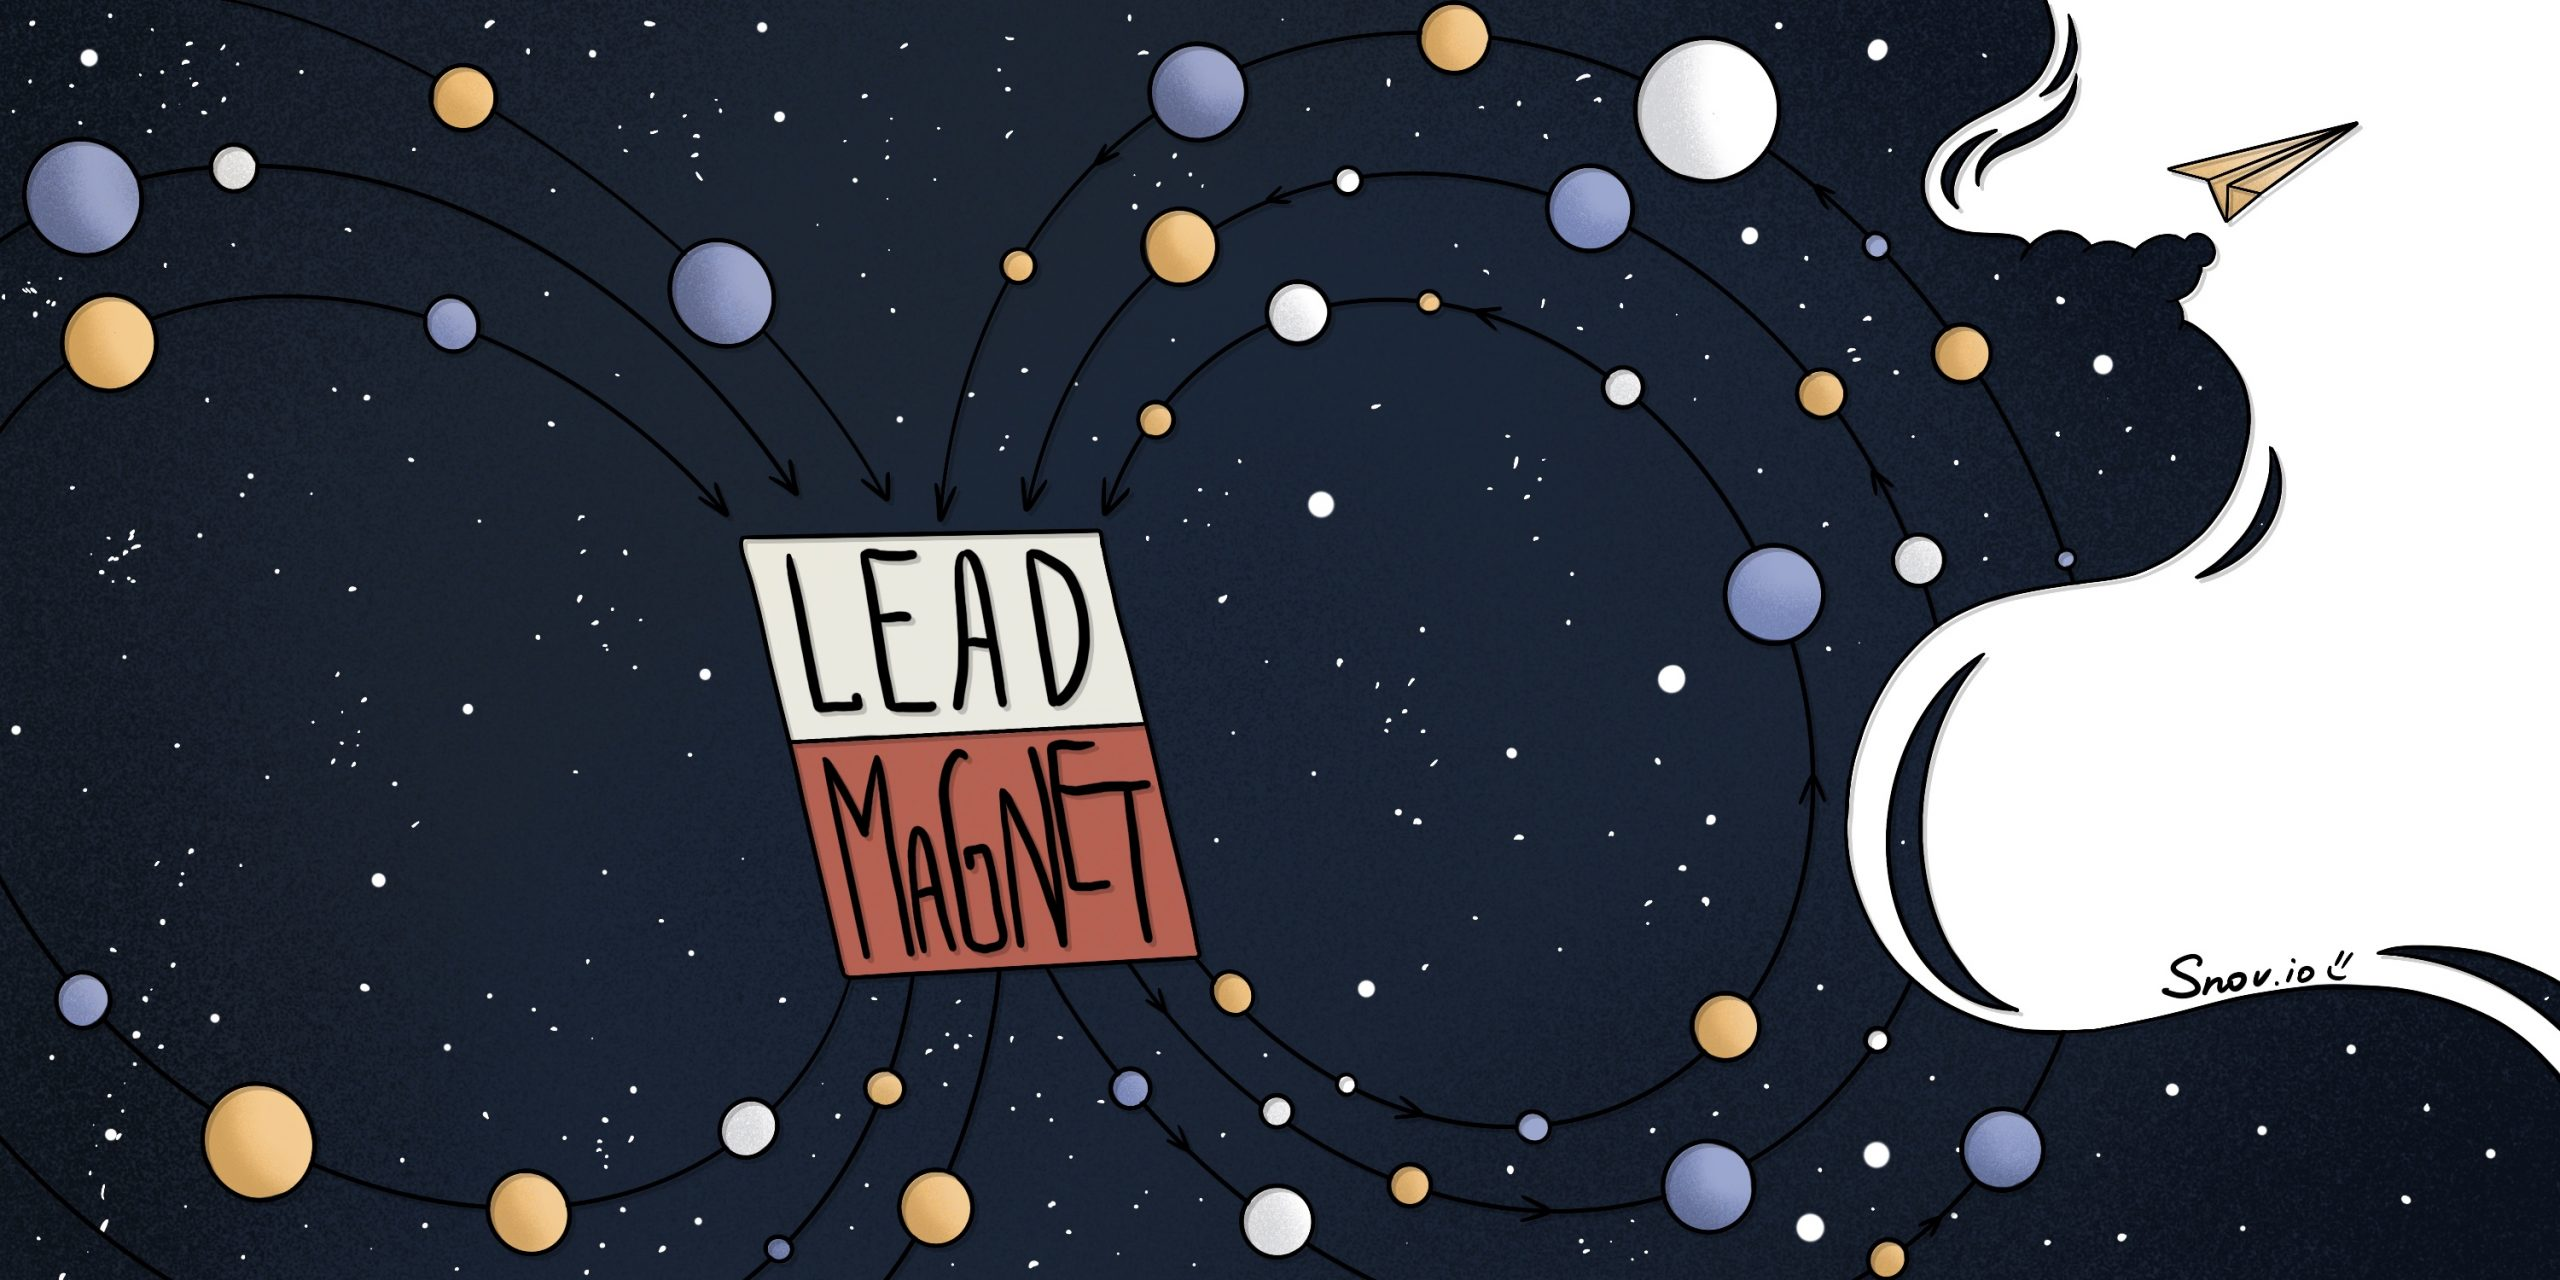 20 Best Lead Magnet Ideas To Expand Your Prospect List